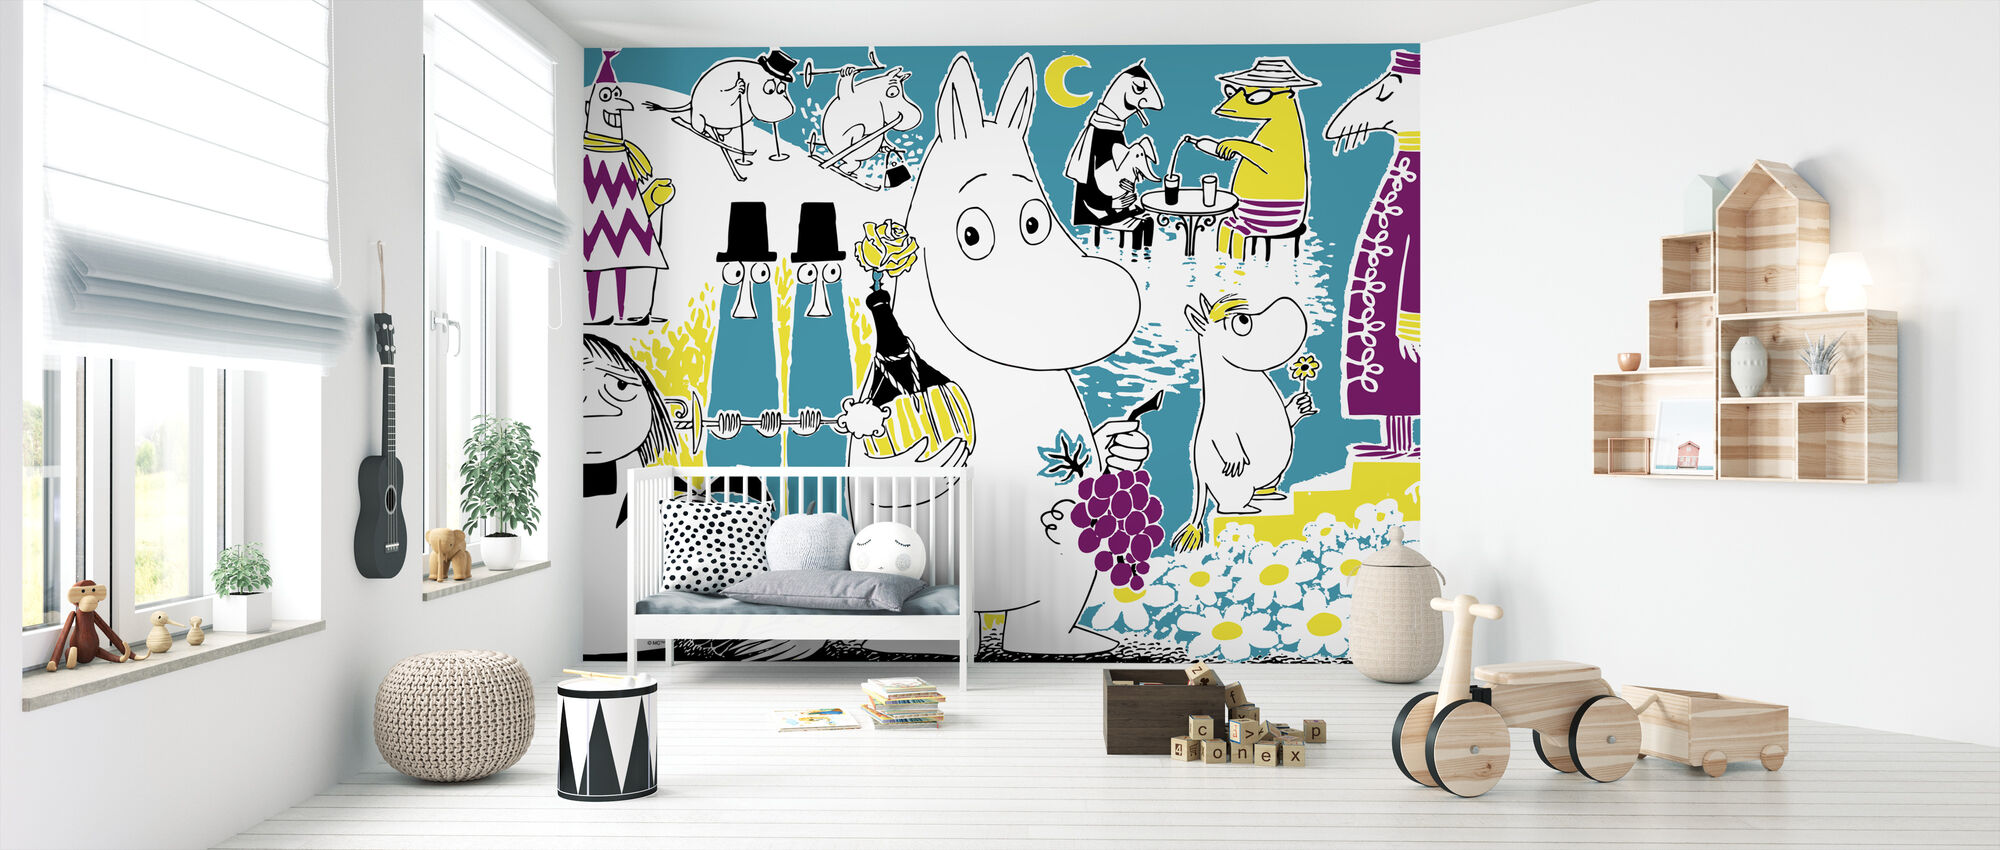 Moomin - Comic Book 2 - Wallpaper - Nursery